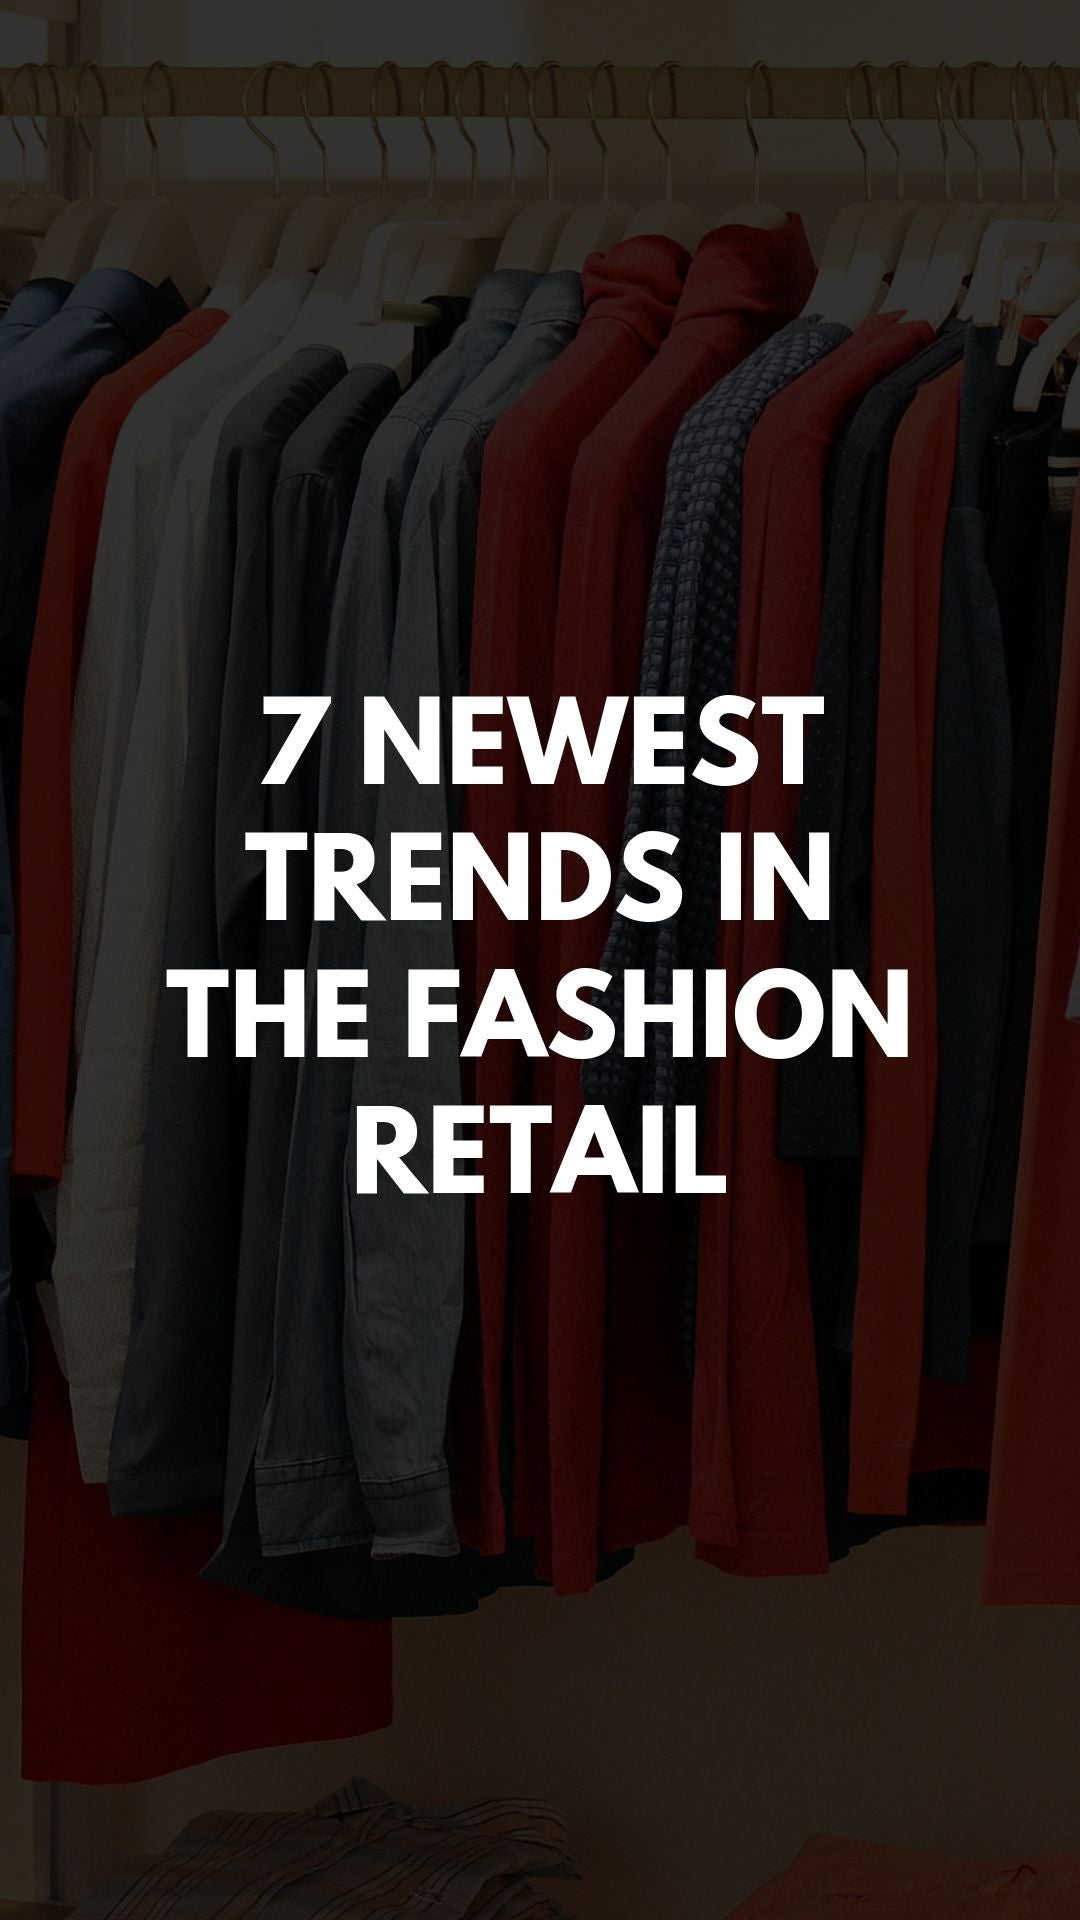 7 Newest Trends in the Fashion Retail